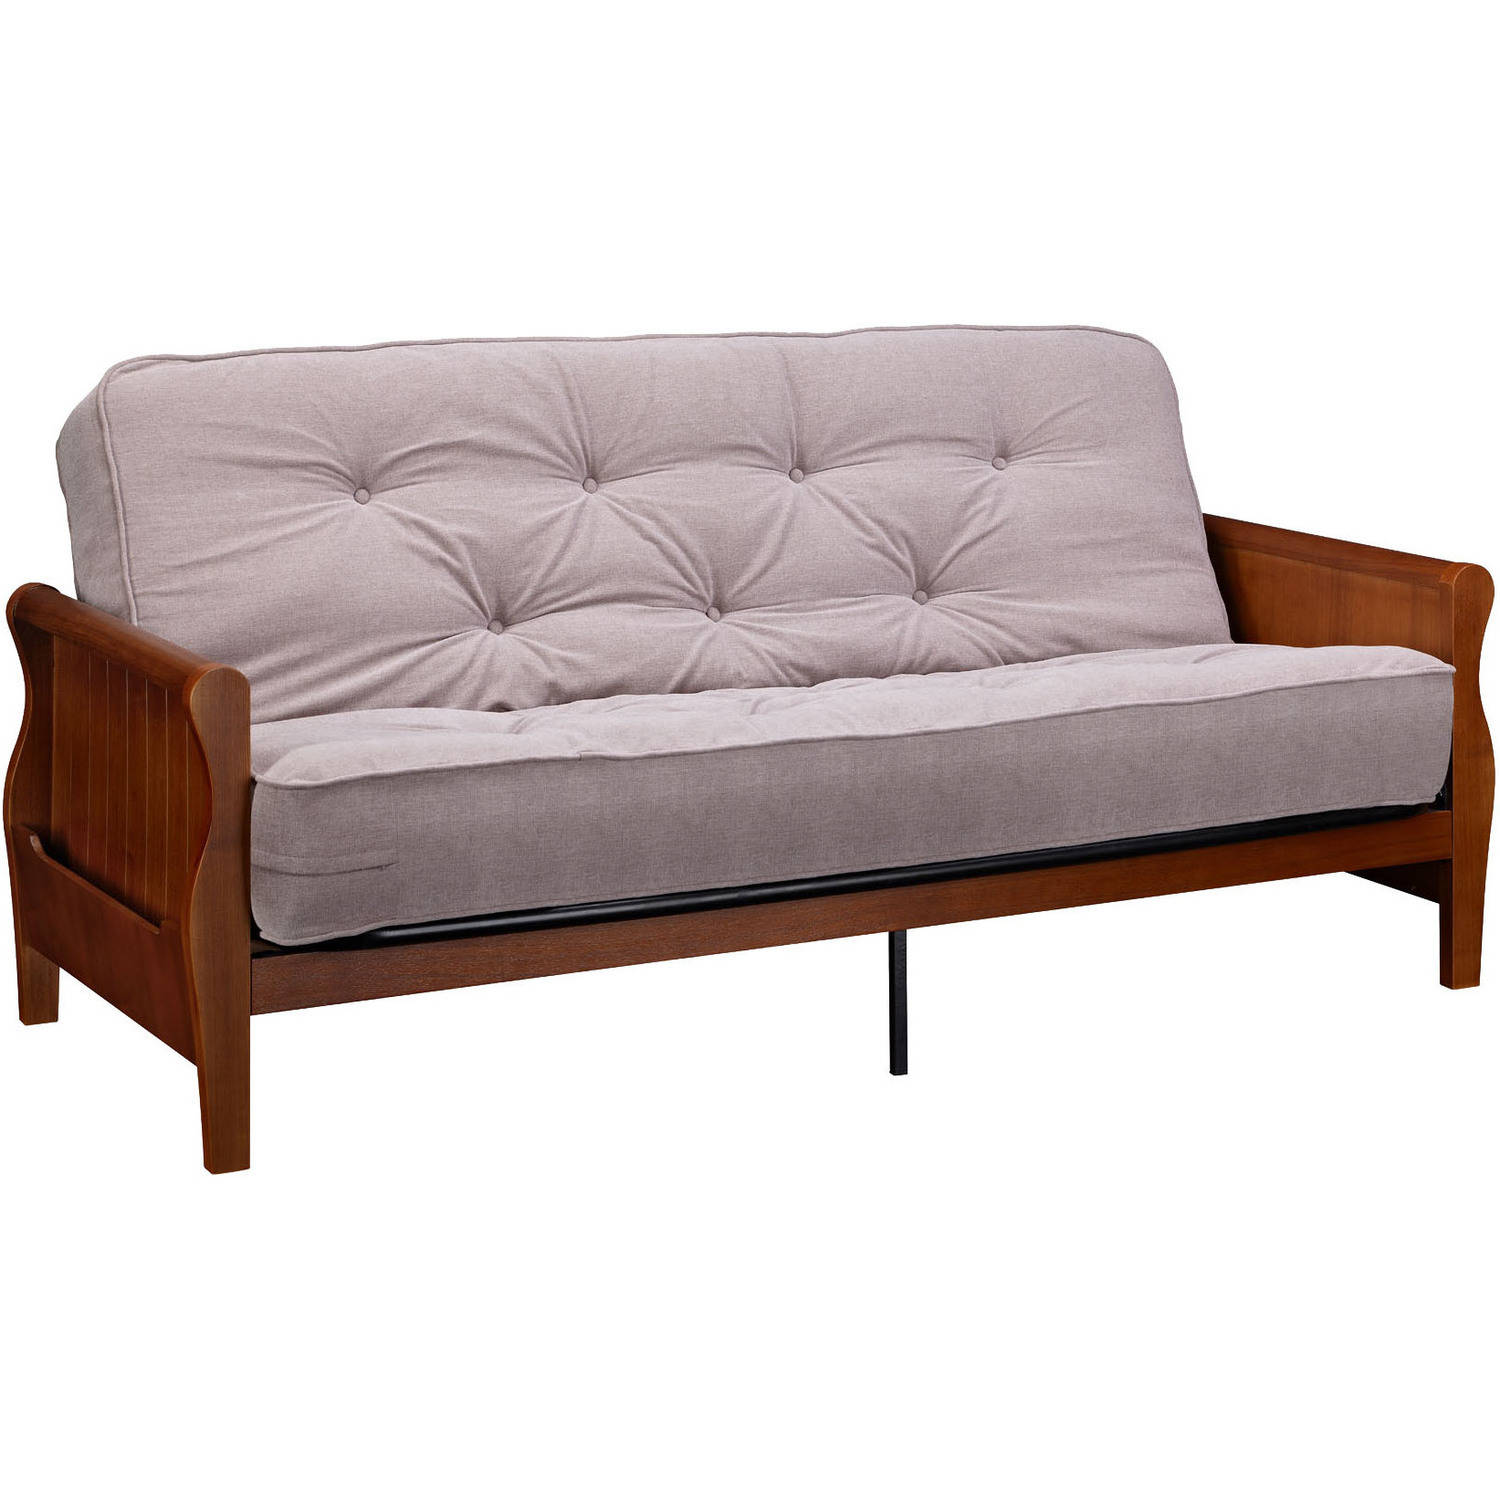 "Better Homes and Gardens Wood Arm Futon With 8"" Coil Mattress, Multiple Colors by Dorel Home Products"